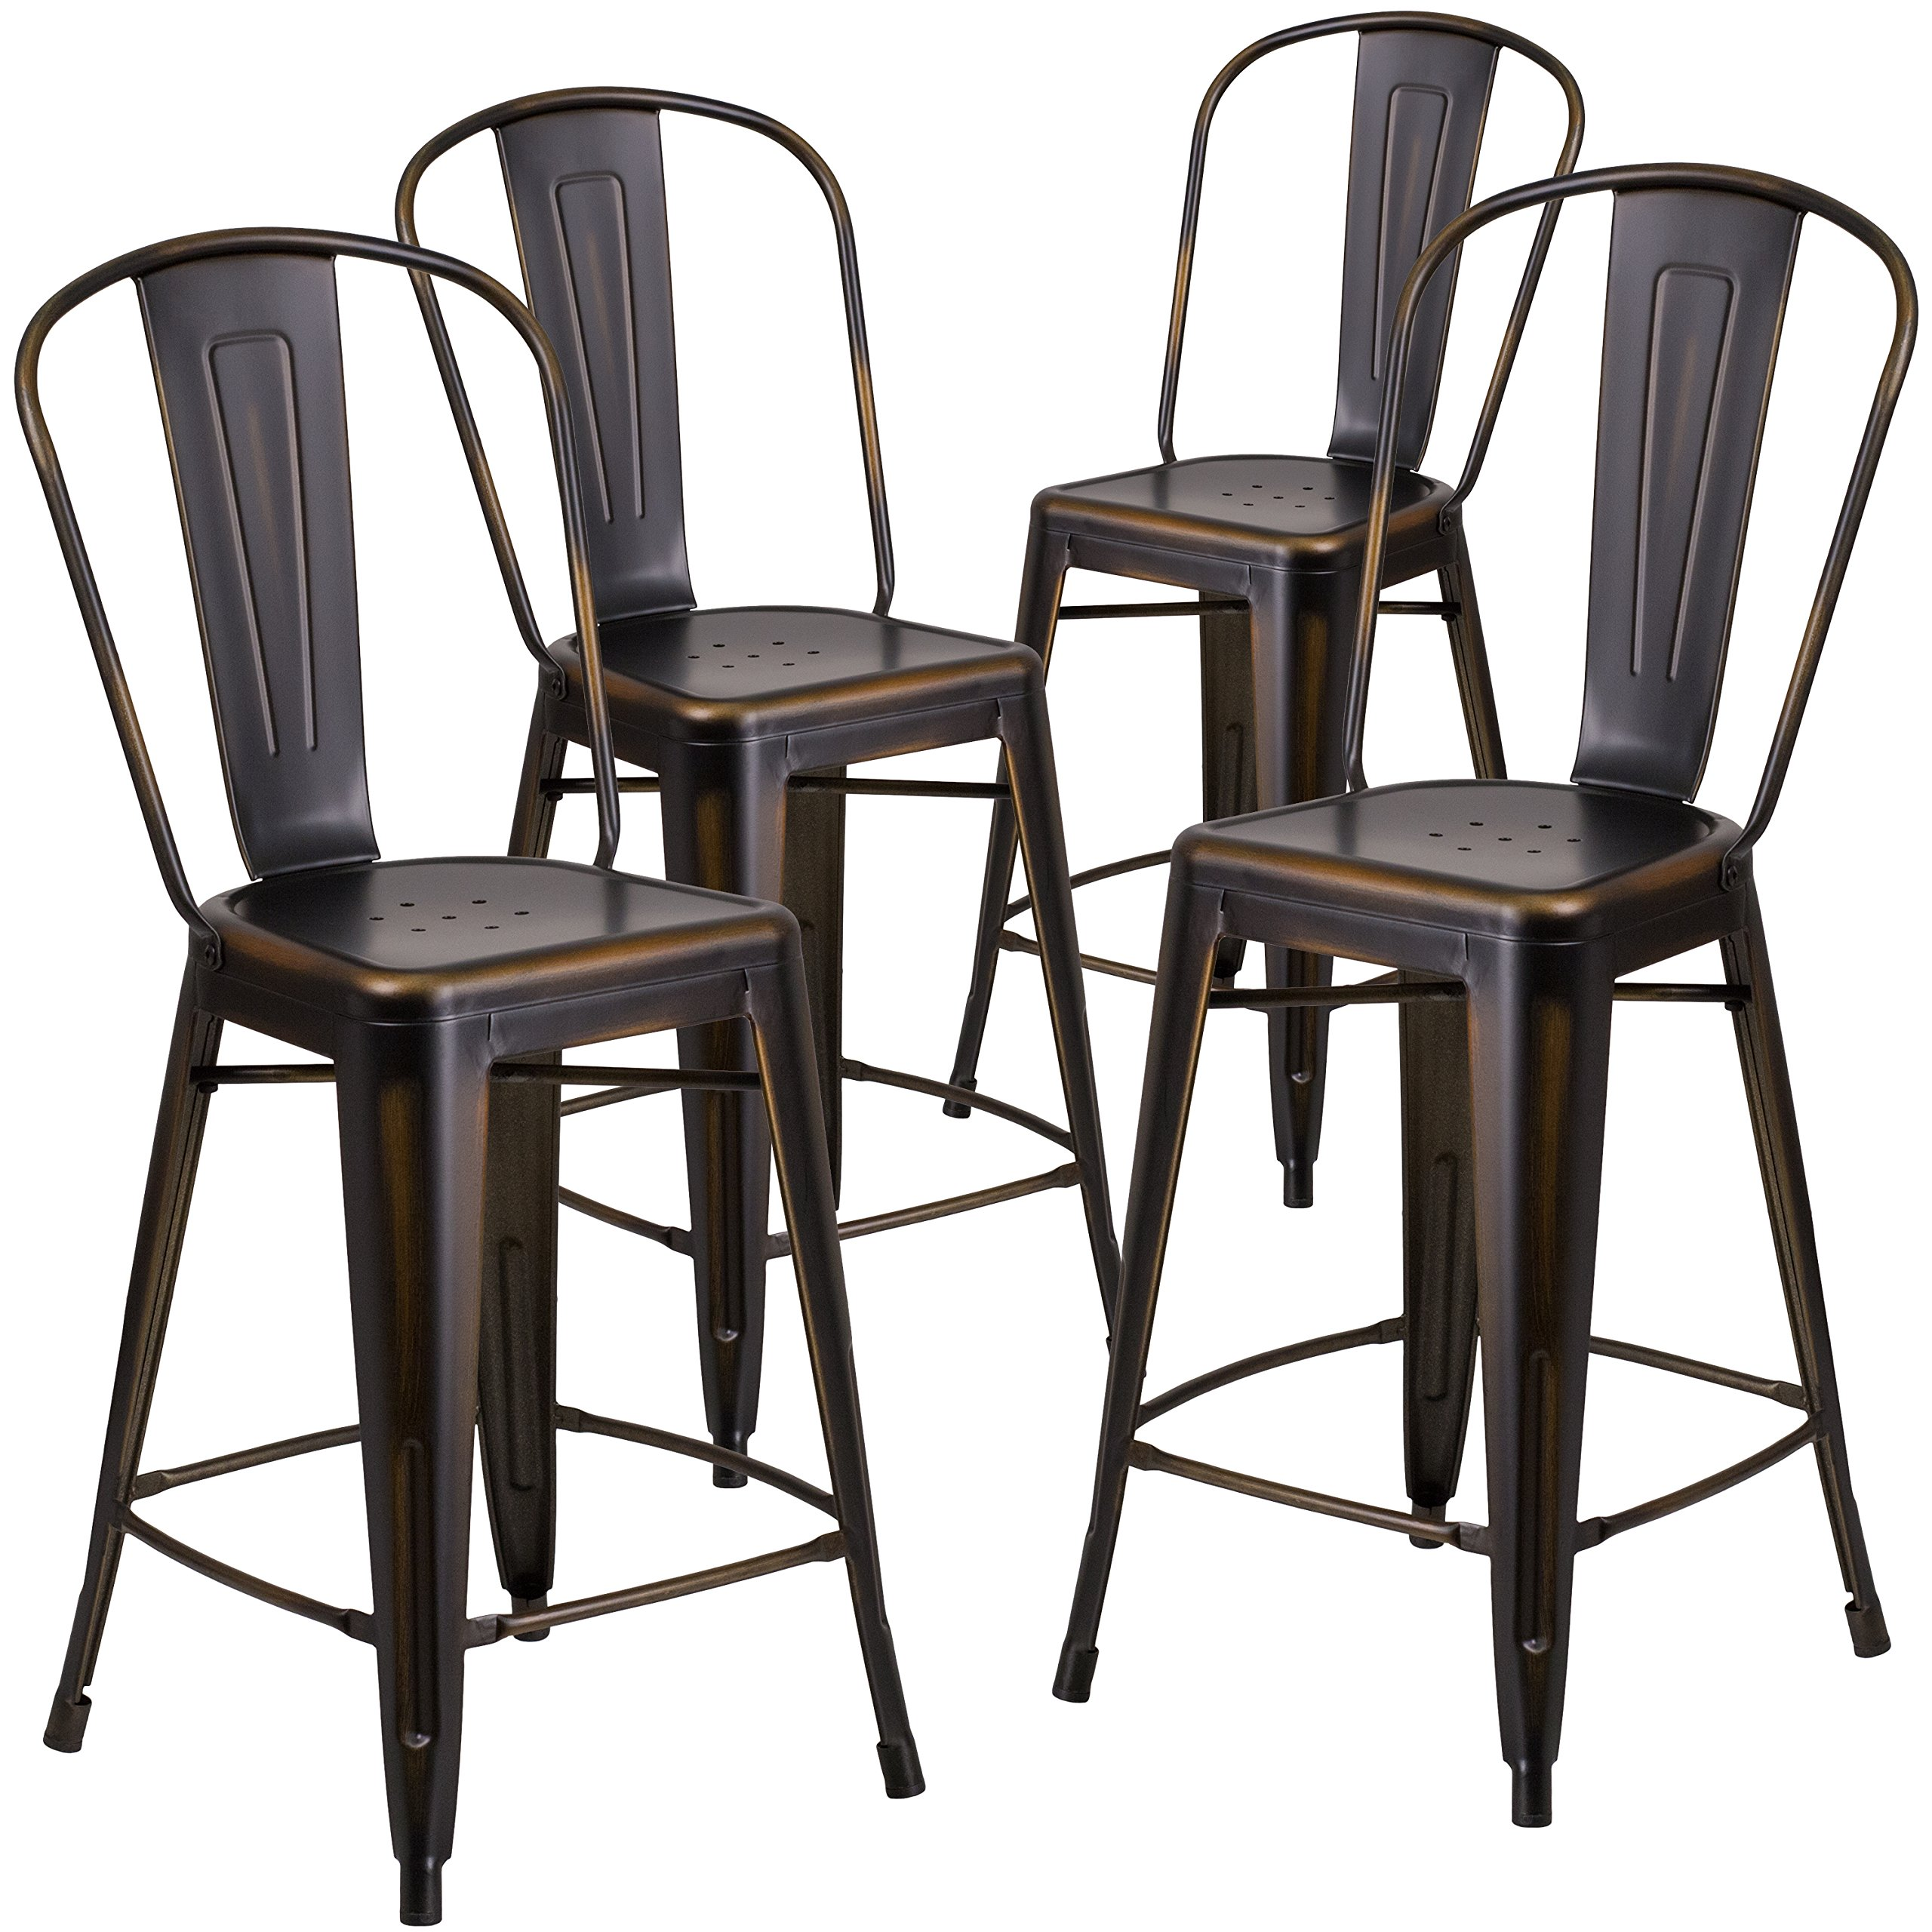 Flash Furniture 4 Pk. 24'' High Distressed Copper Metal Indoor-Outdoor Counter Height Stool with Back